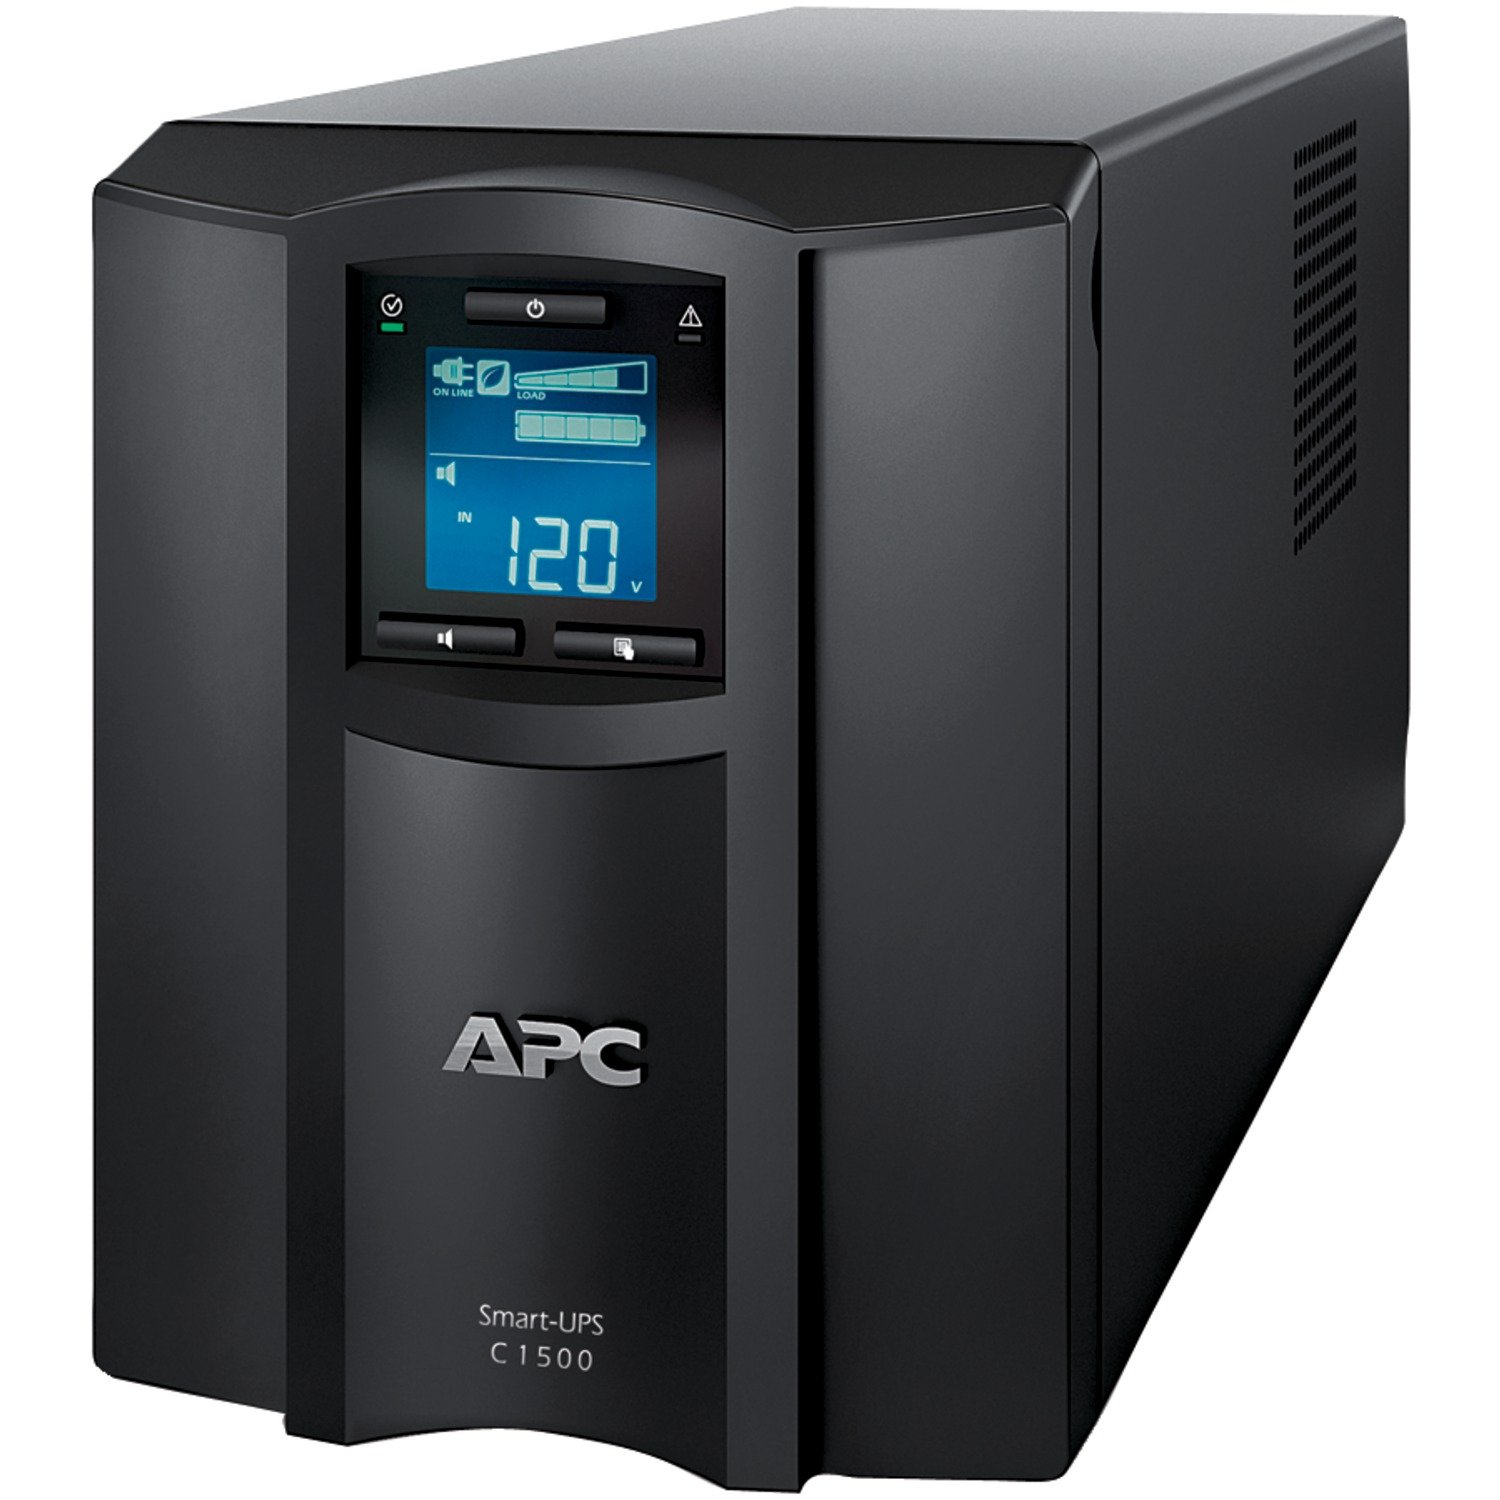 APC Smart-UPS 1500VA UPS Battery Backup with Pure Sine Wave Output (SMC1500) by APC